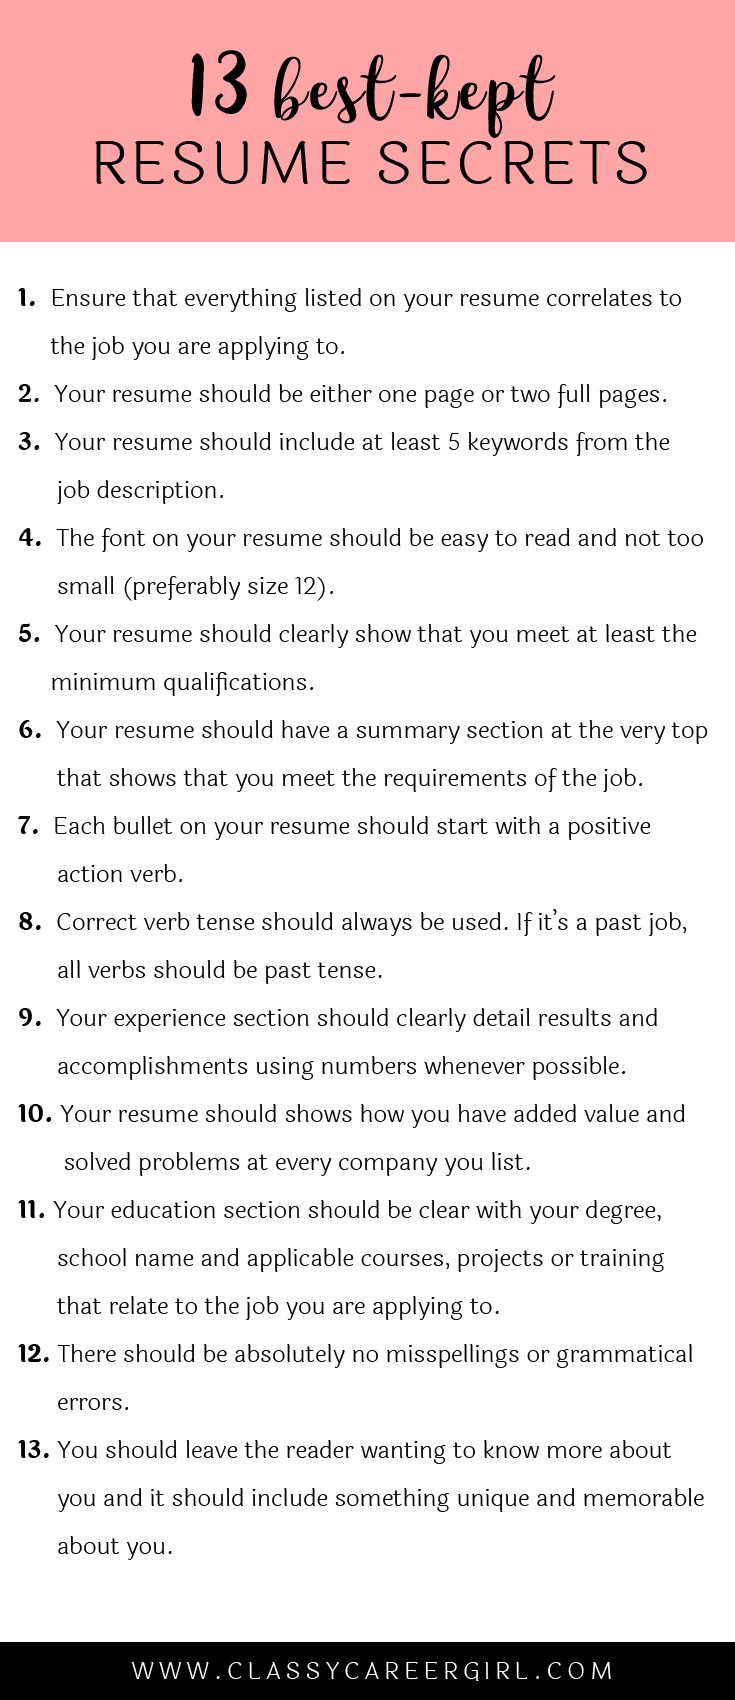 Opposenewapstandardsus  Scenic  Ideas About Resume On Pinterest  Cv Format Resume Cv And  With Fascinating Some Hiring Managers Will Toss Your Resume Out If You Dont Know These  With Charming Best Resume Cover Letter Also Job Descriptions For Resume In Addition Outline For A Resume And Cocktail Waitress Resume As Well As Optimal Resume Mdc Additionally Accounting Intern Resume From Pinterestcom With Opposenewapstandardsus  Fascinating  Ideas About Resume On Pinterest  Cv Format Resume Cv And  With Charming Some Hiring Managers Will Toss Your Resume Out If You Dont Know These  And Scenic Best Resume Cover Letter Also Job Descriptions For Resume In Addition Outline For A Resume From Pinterestcom